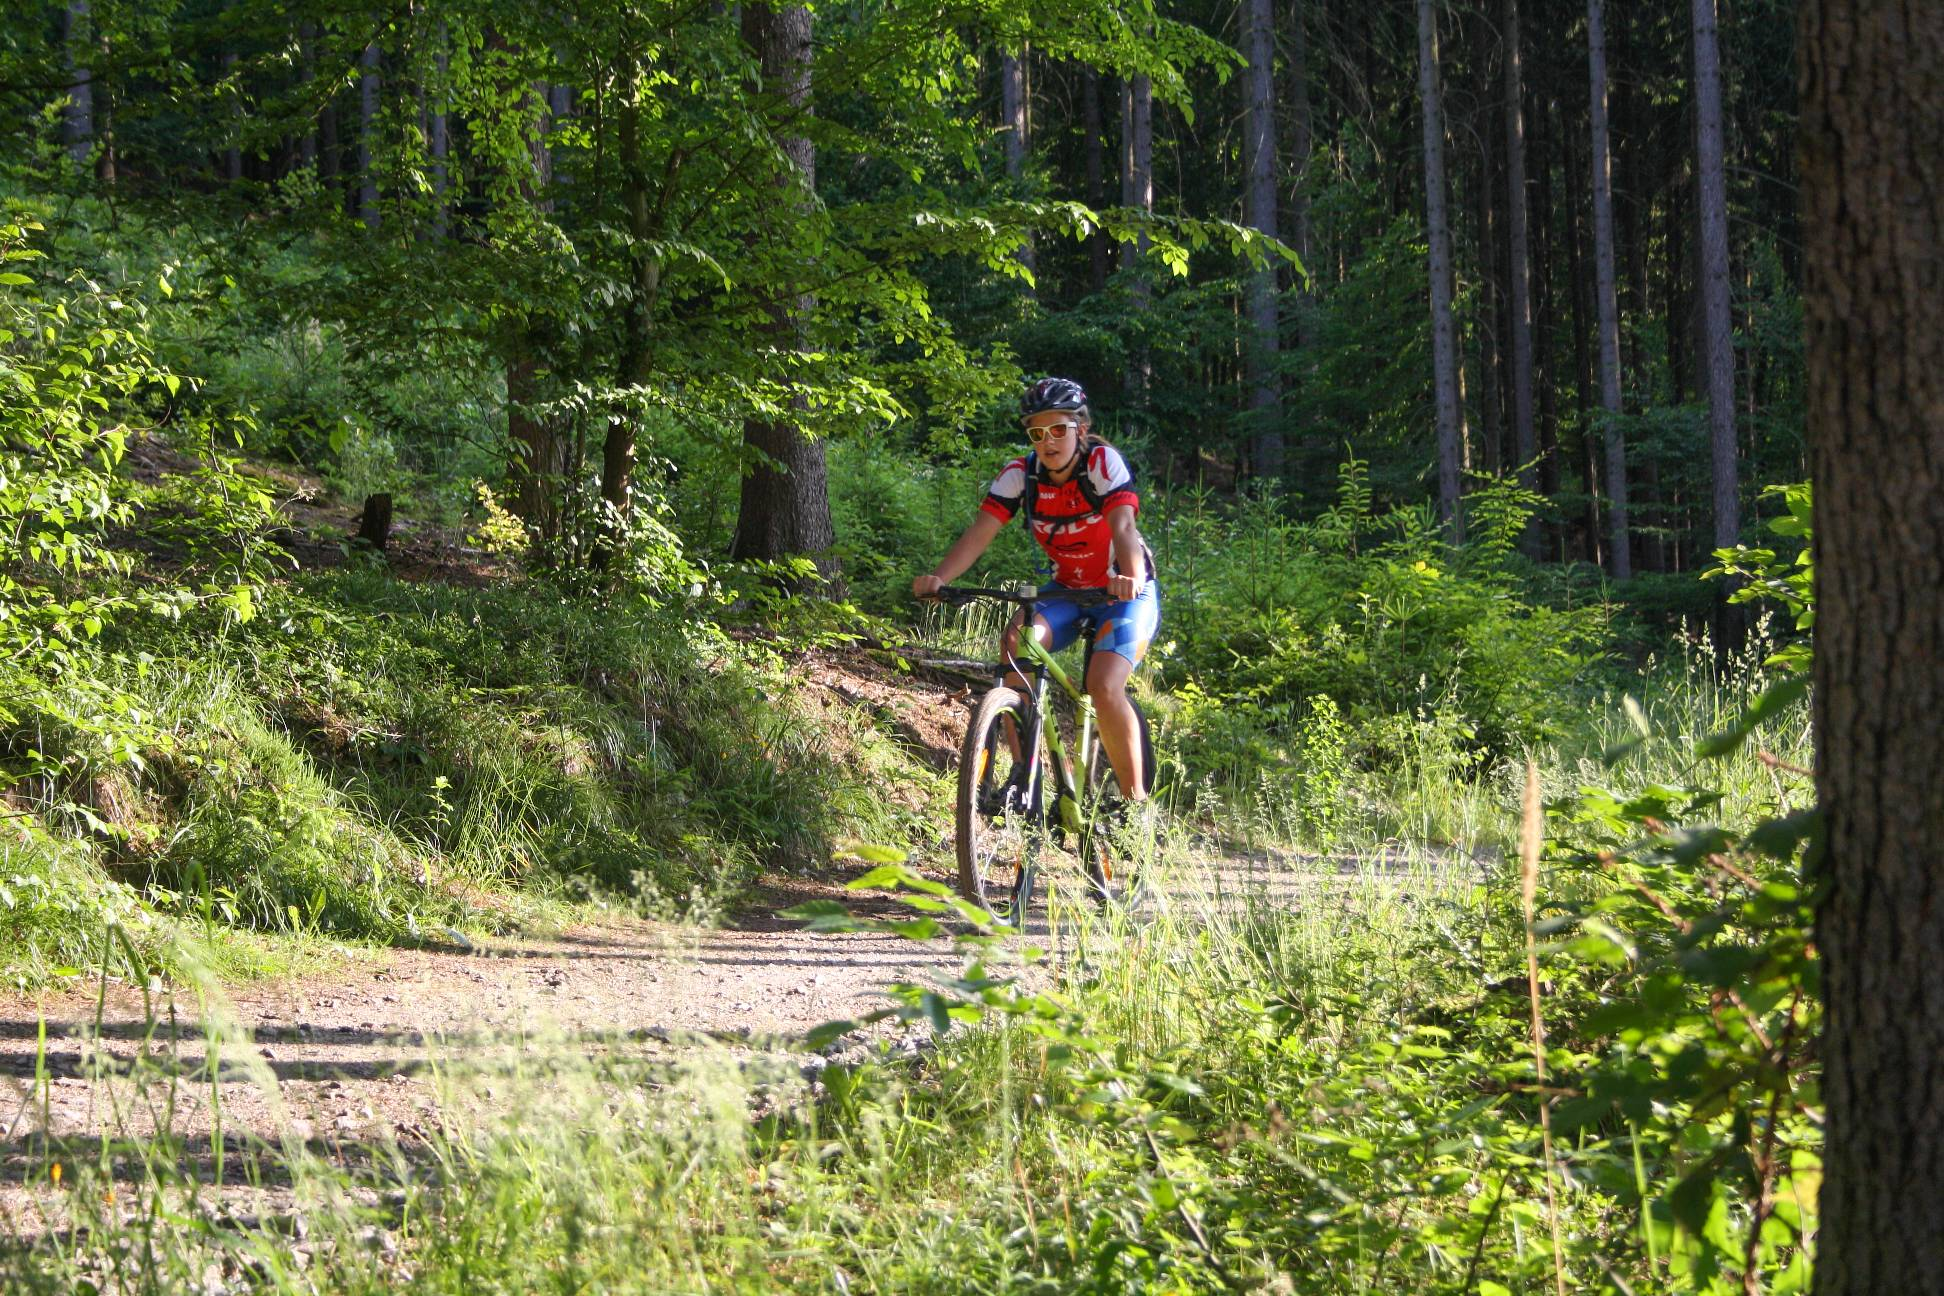 sazava singletrack (2 of 4)